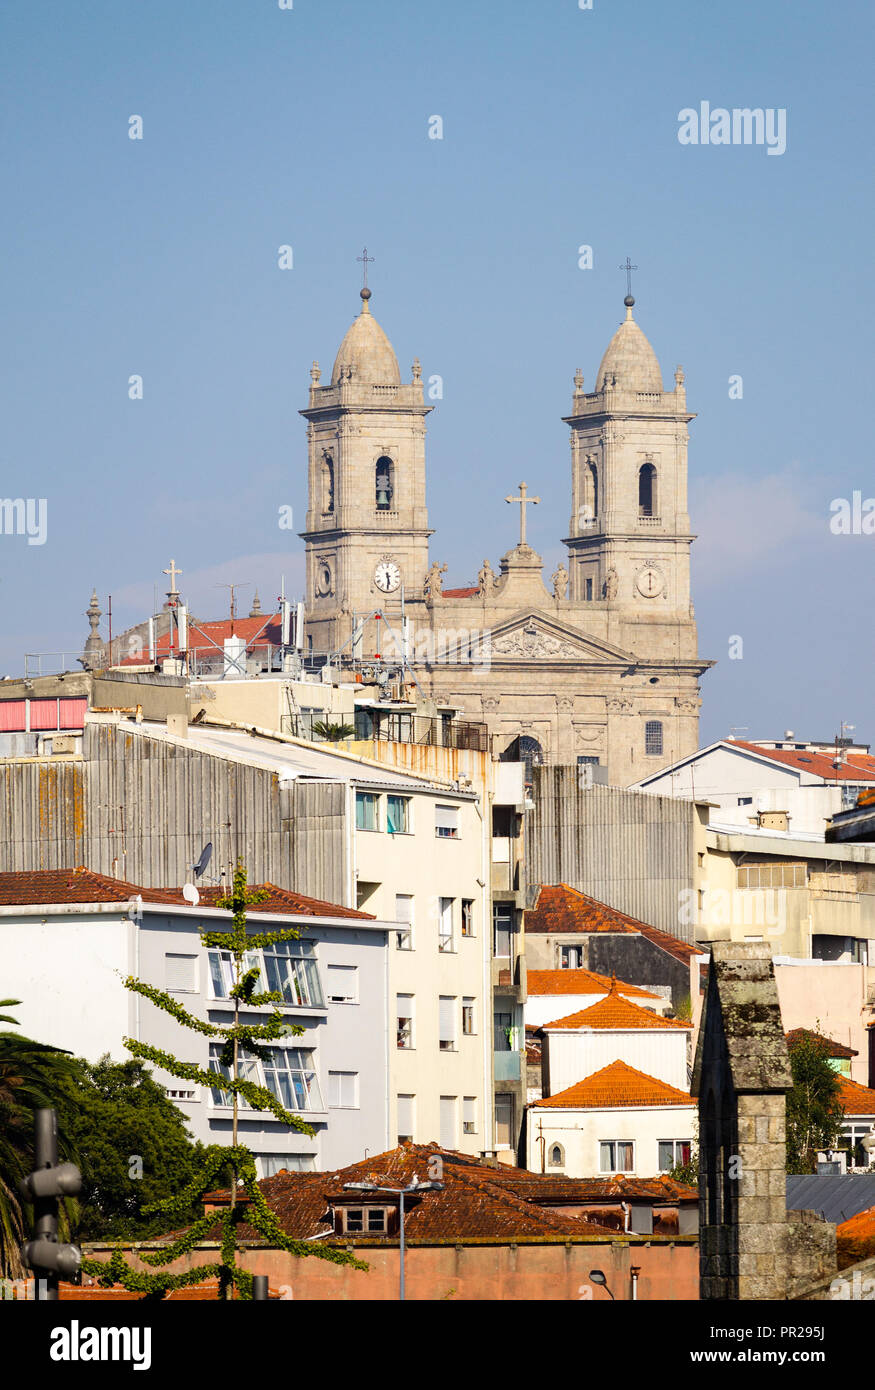 The Church of Lapa at Porto as seen from a distance, amidst various buildings. - Stock Image